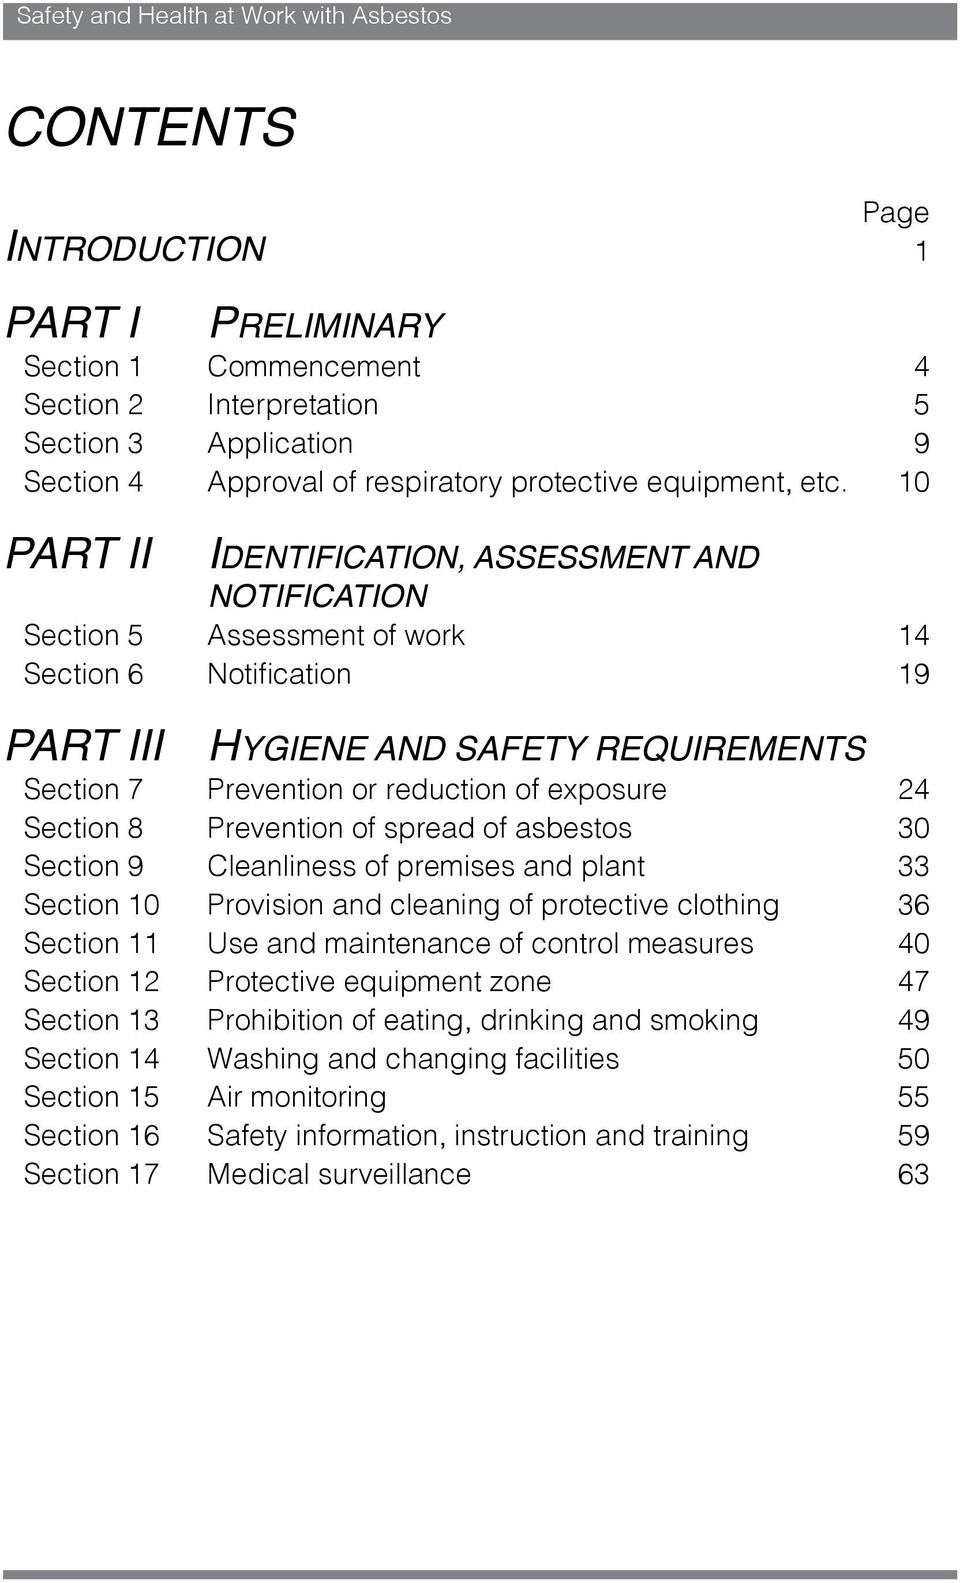 24 Section 8 Prevention of spread of asbestos 30 Section 9 Cleanliness of premises and plant 33 Section 10 Provision and cleaning of protective clothing 36 Section 11 Use and maintenance of control